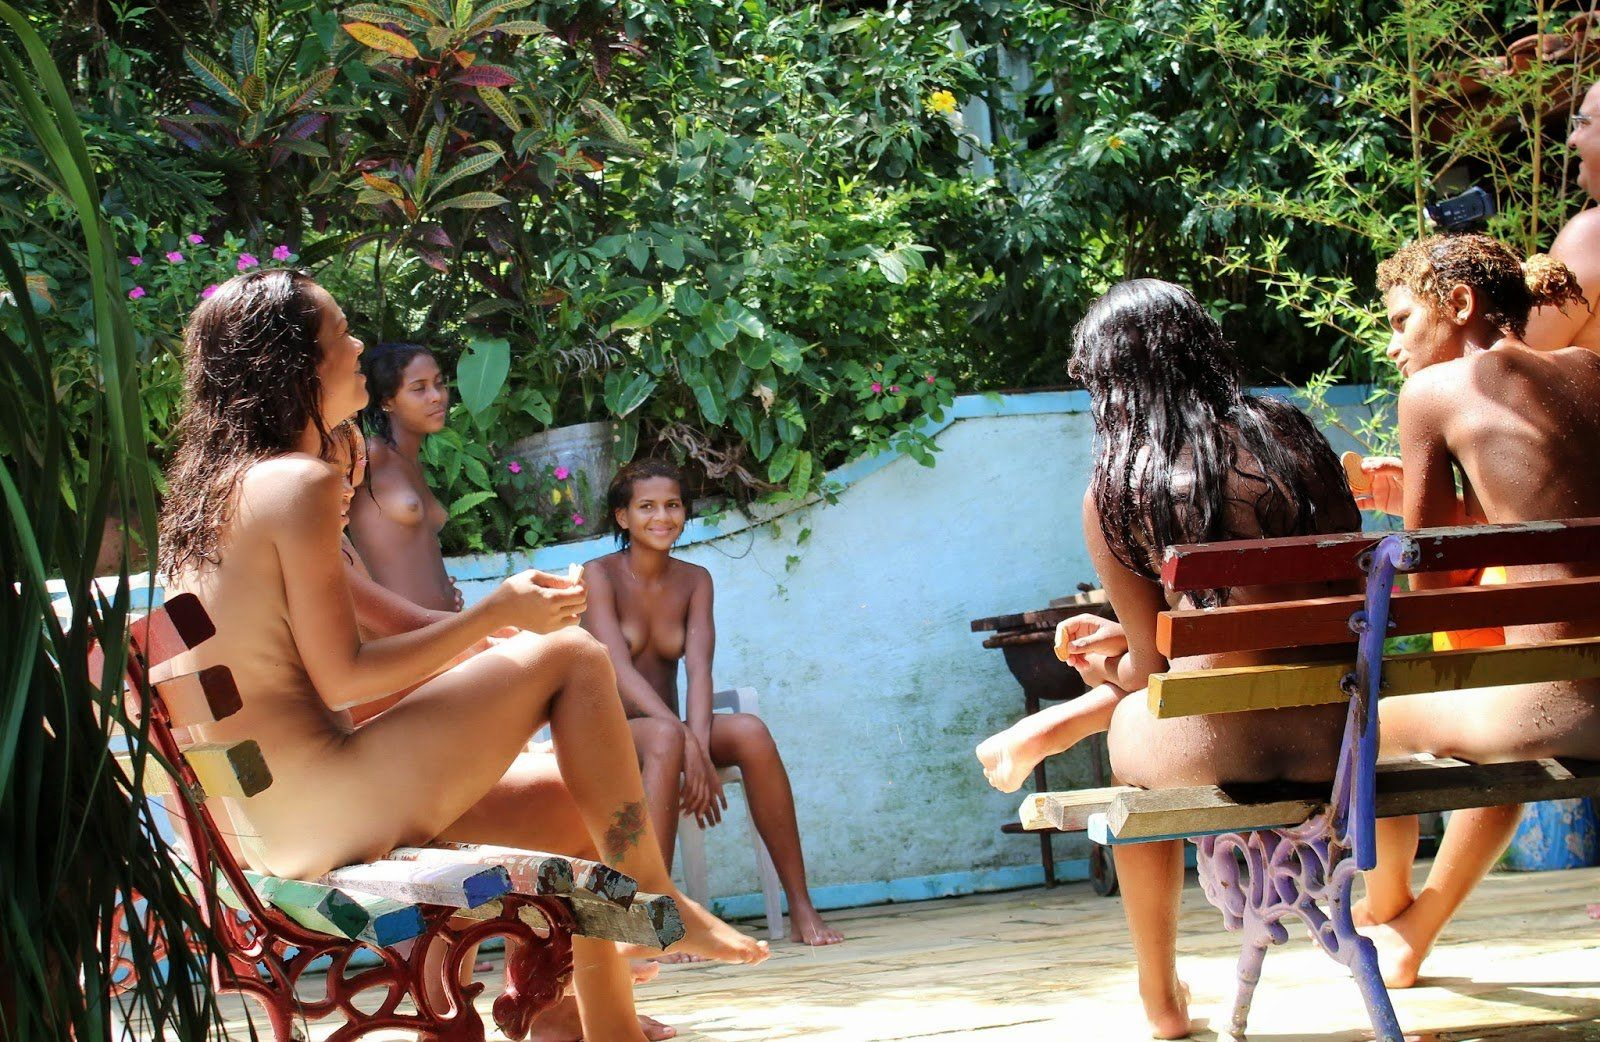 pure nudism.com brazilianmodel young jpg4